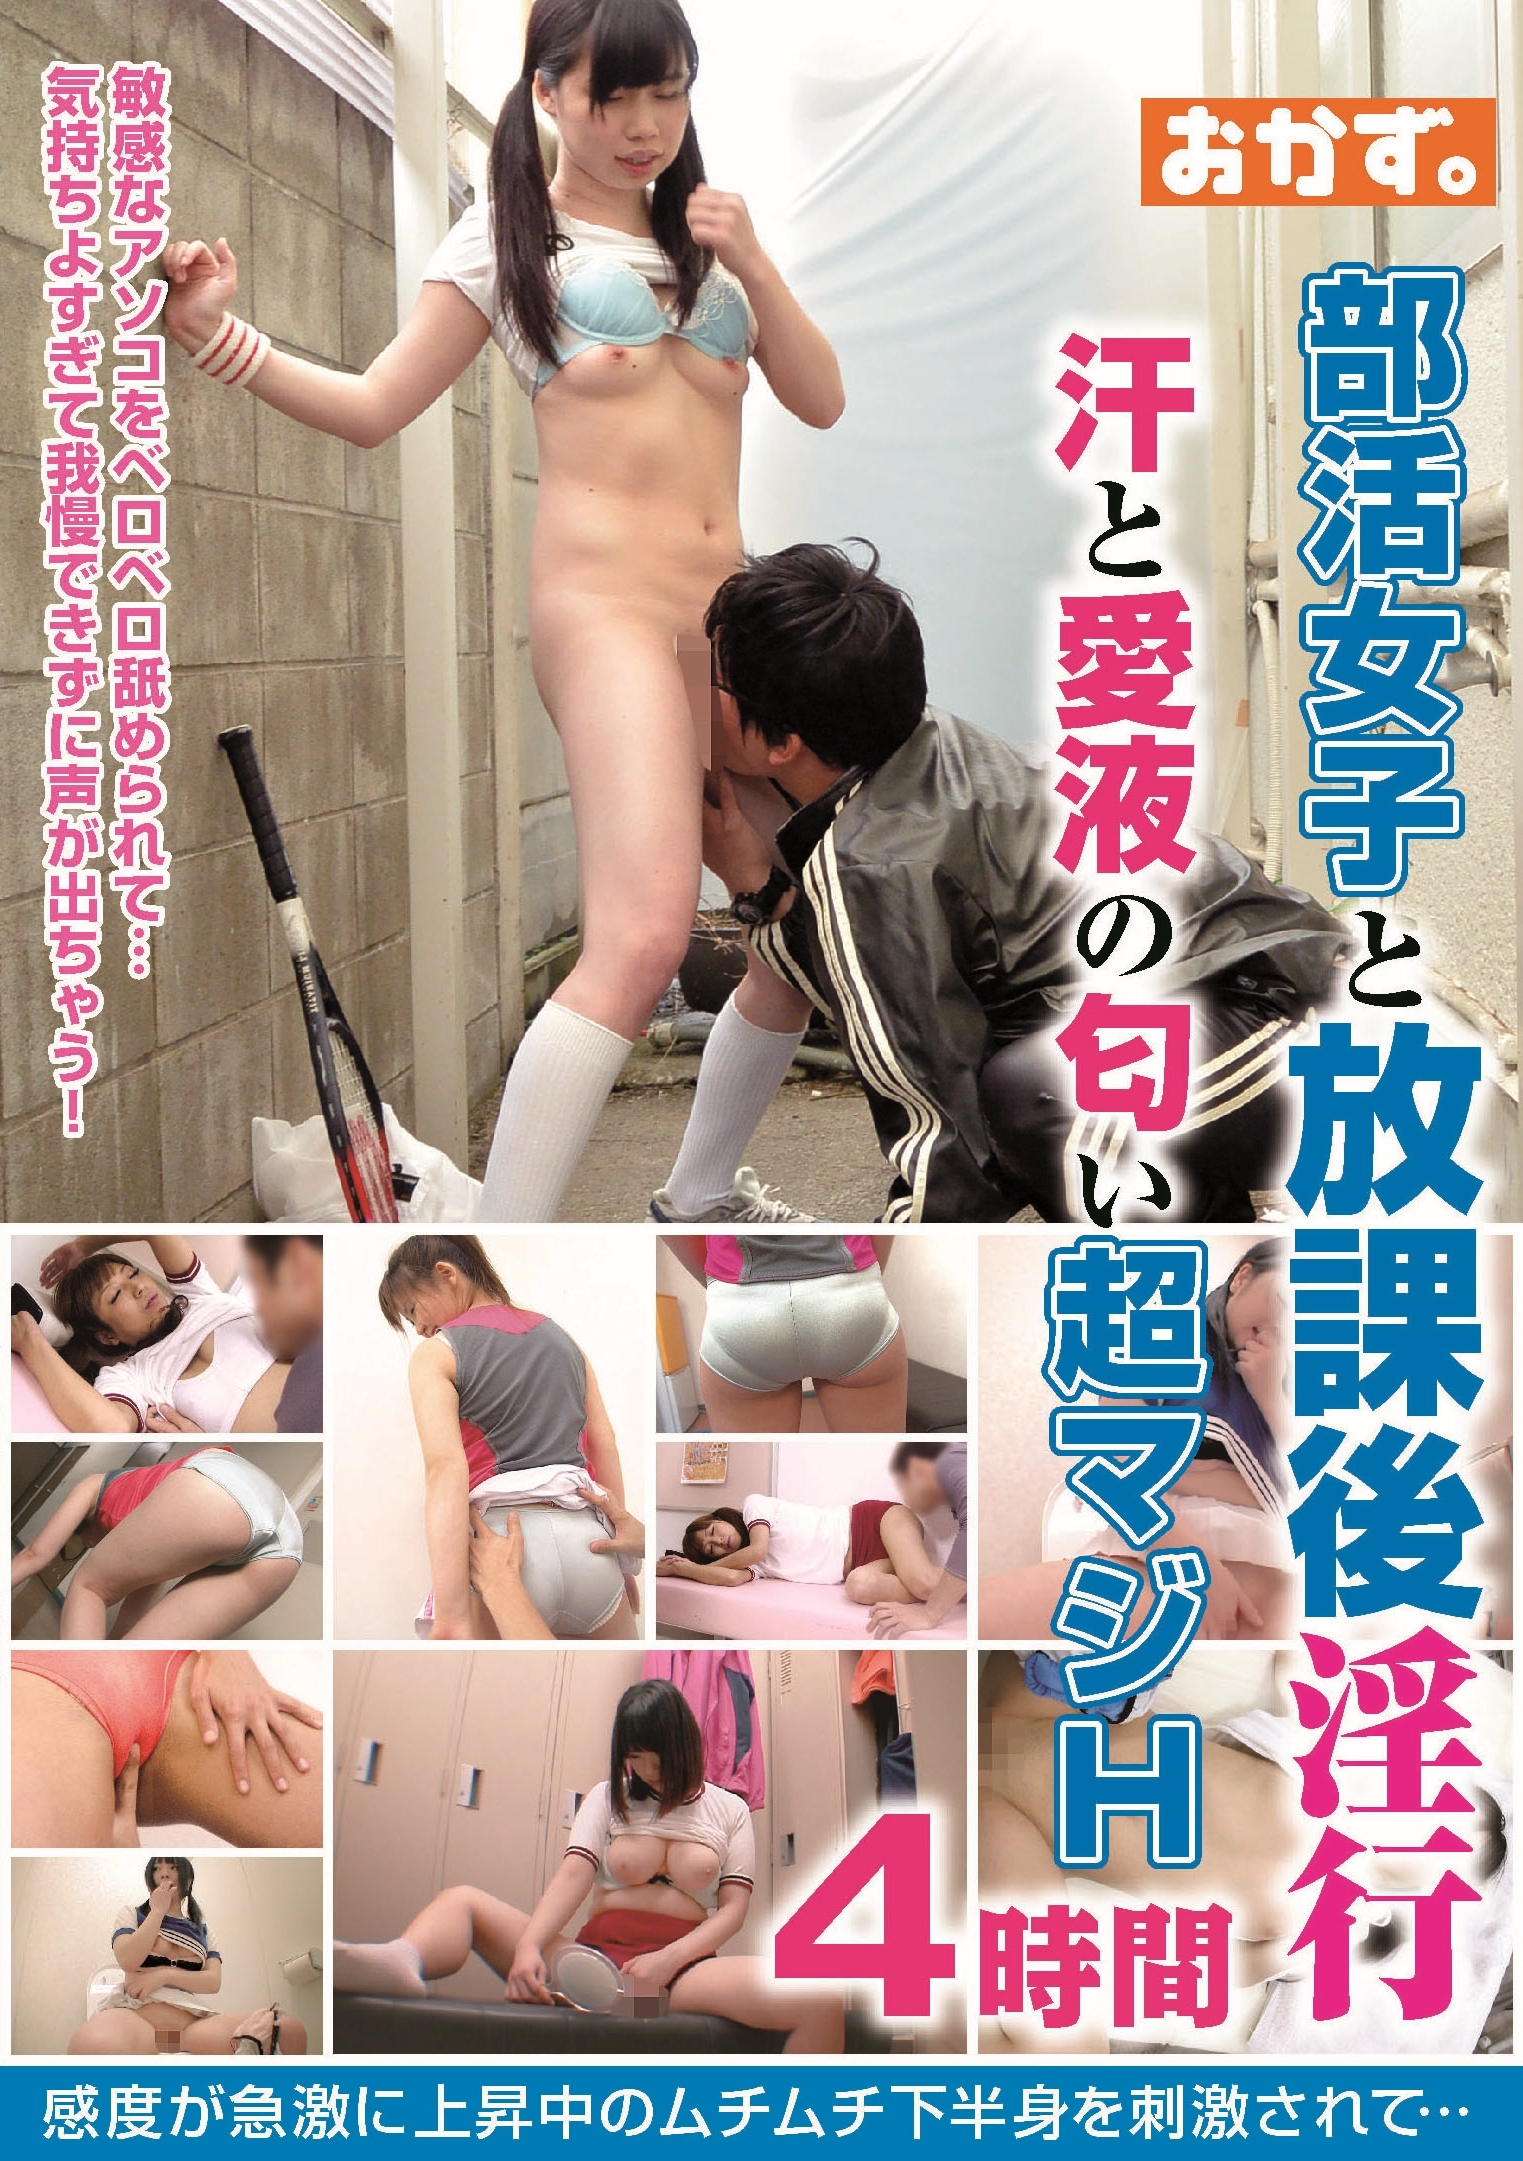 After School Obscene Sex With Sport Club Girls, Serious Sex With Smell Of Sweat And Love Juice, 4 Hours